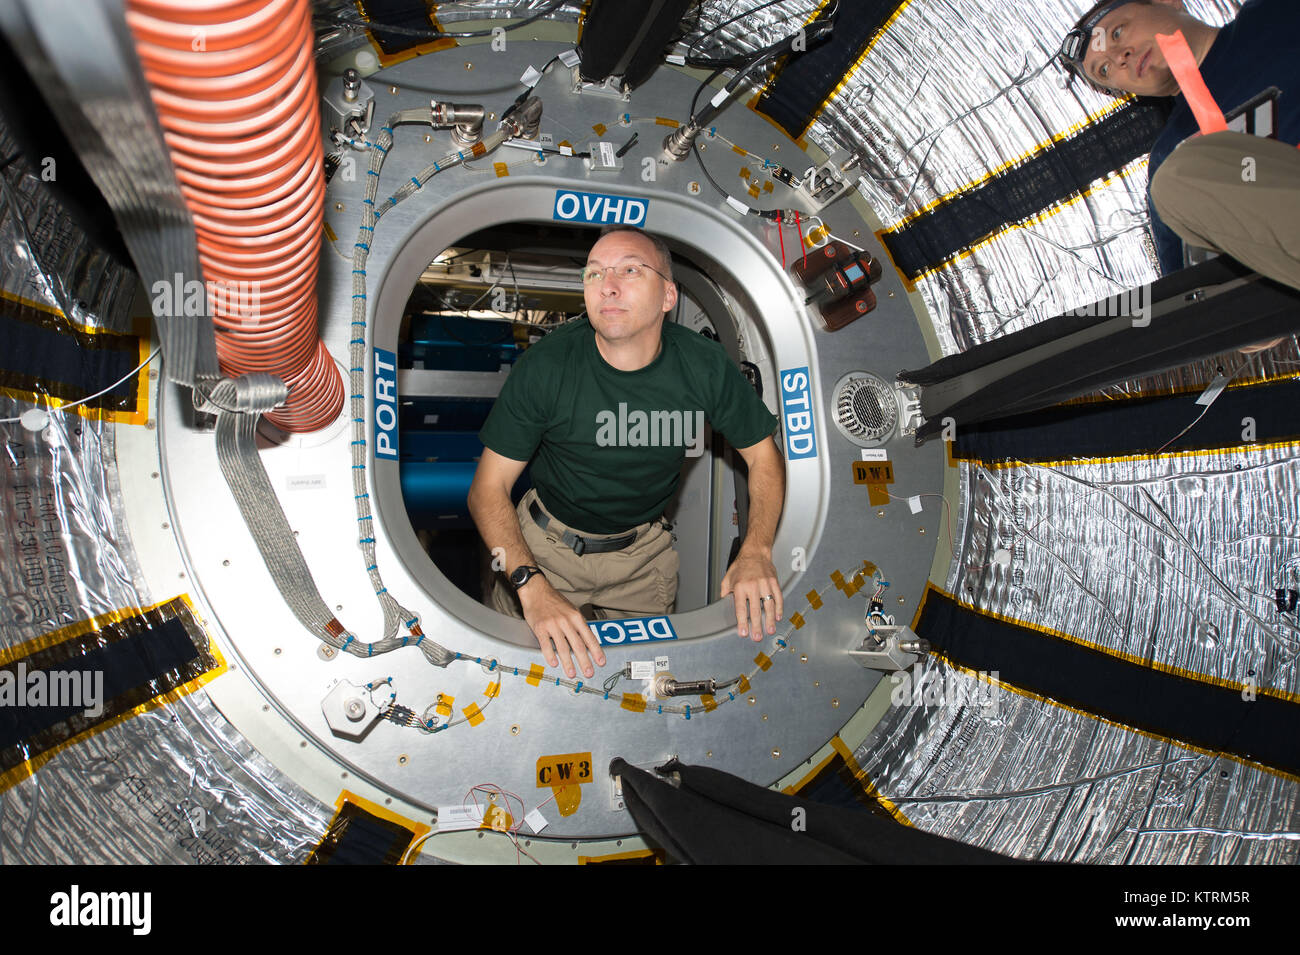 NASA astronaut Randy Bresnik looks through the hatch of the International Space Station's Bigelow Expandable - Stock Image